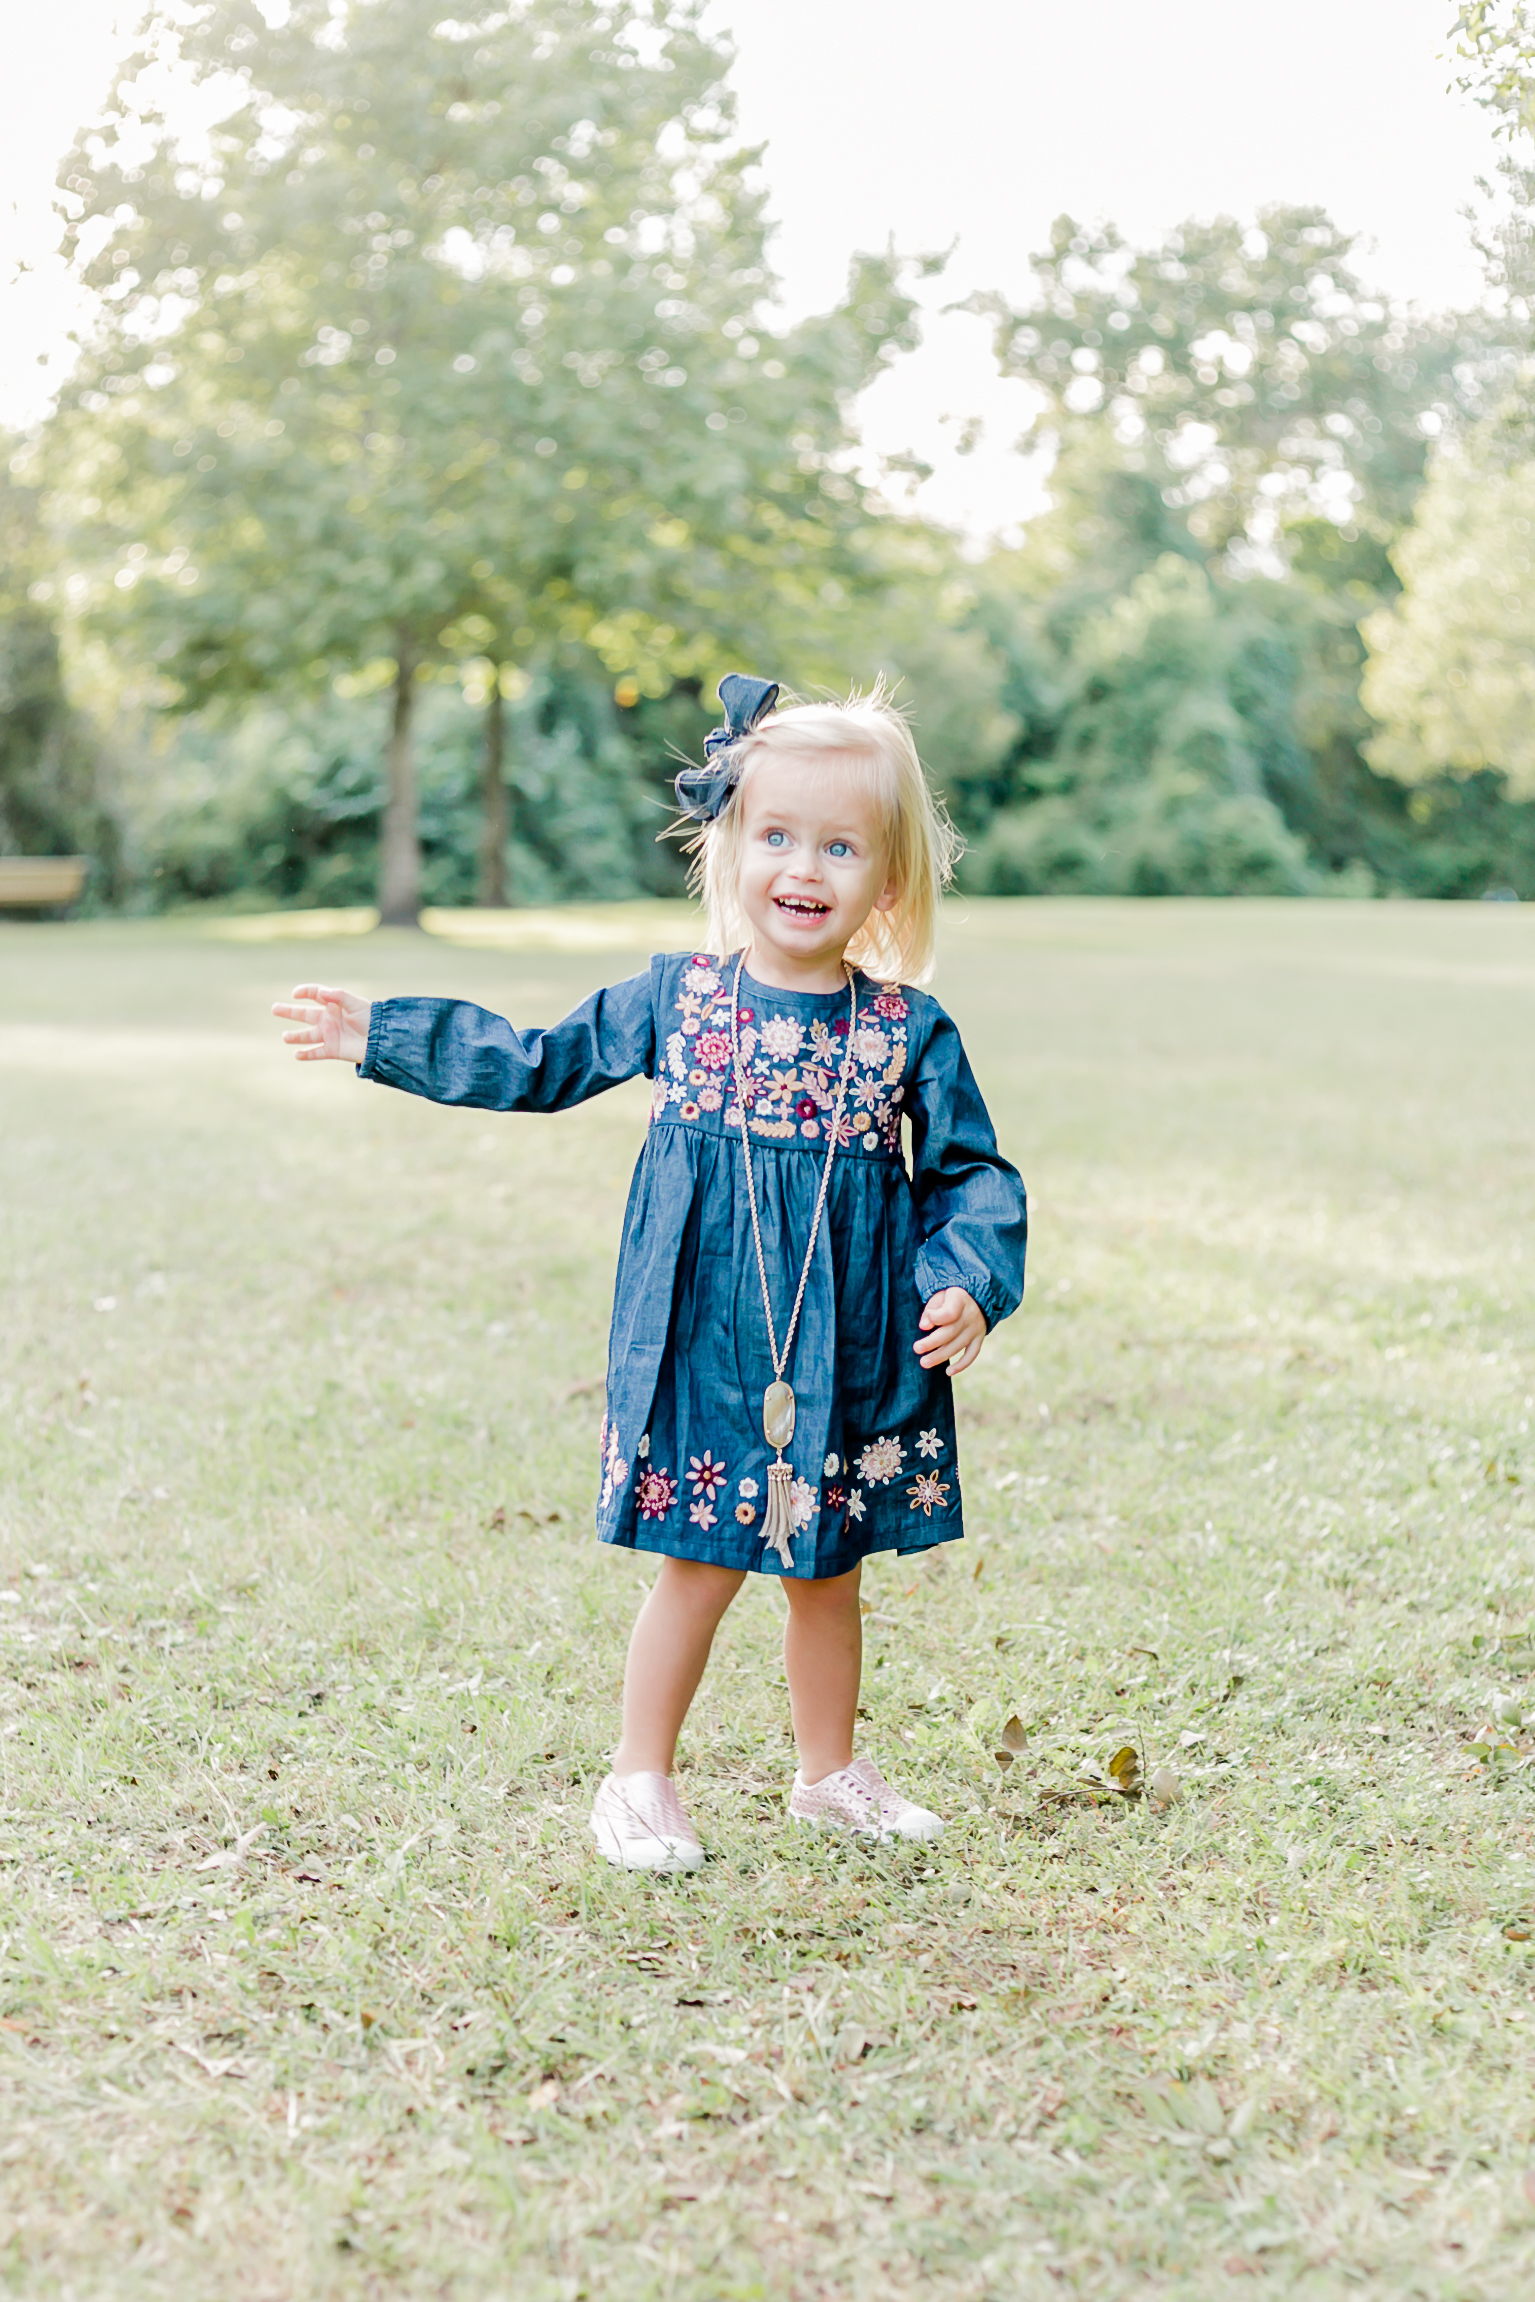 Hoelscher_FamilySession2018_ScreenRes-115.jpg